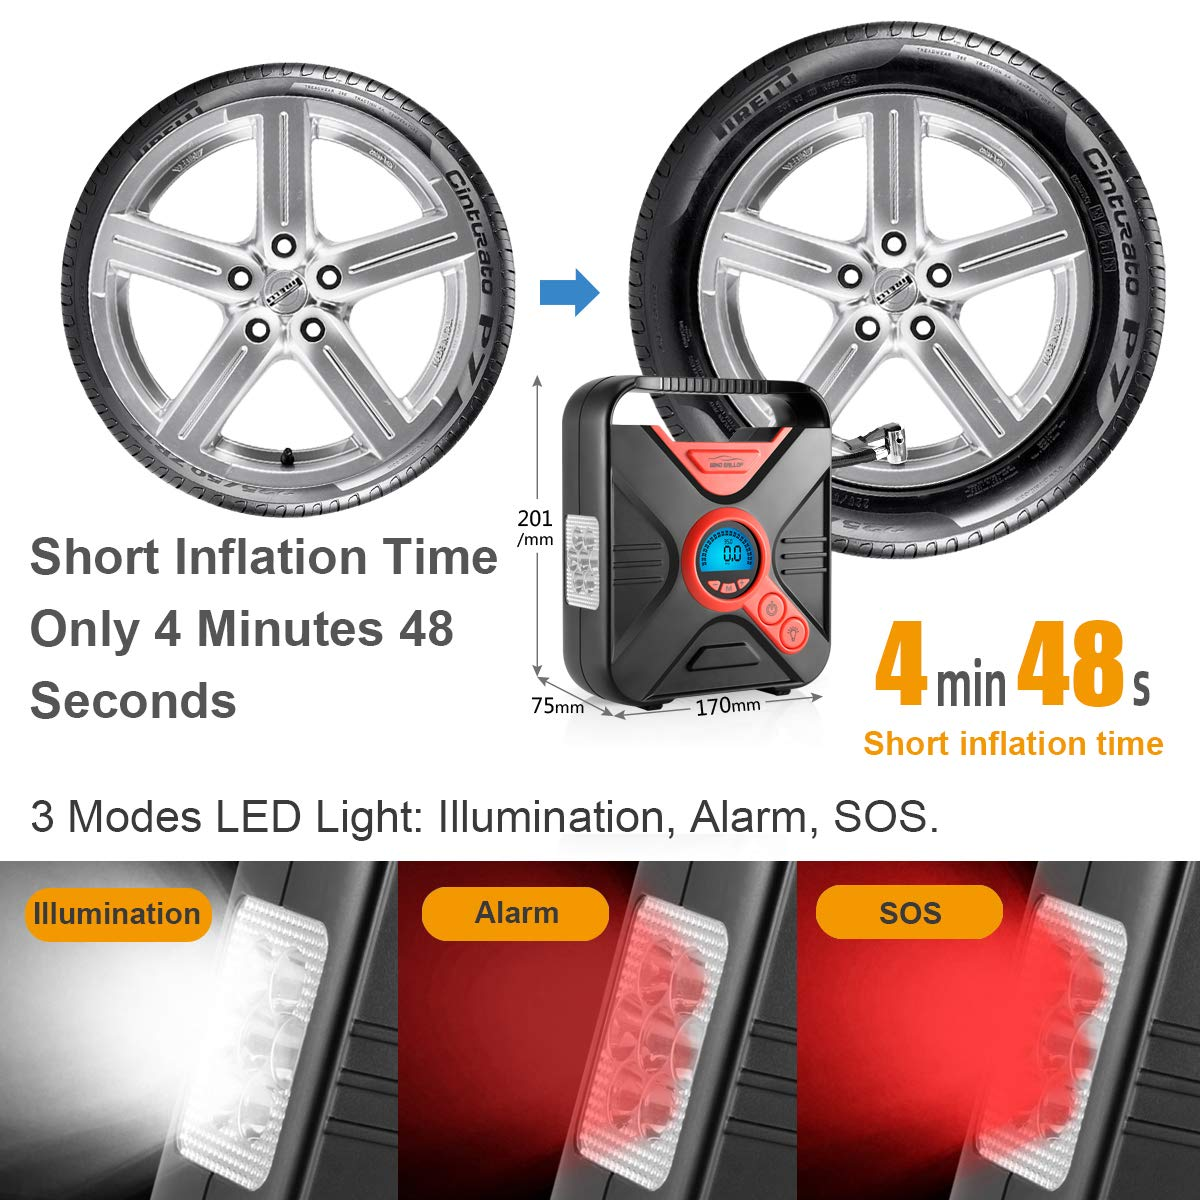 WindGallop Portable Air Compressor Tire Inflator Air Pump for Car Tires DC 12V Tire Pump with Gauge Valve Adaptors LED Light for Automobiles Bike Motorbike Basketball Inflatables Red